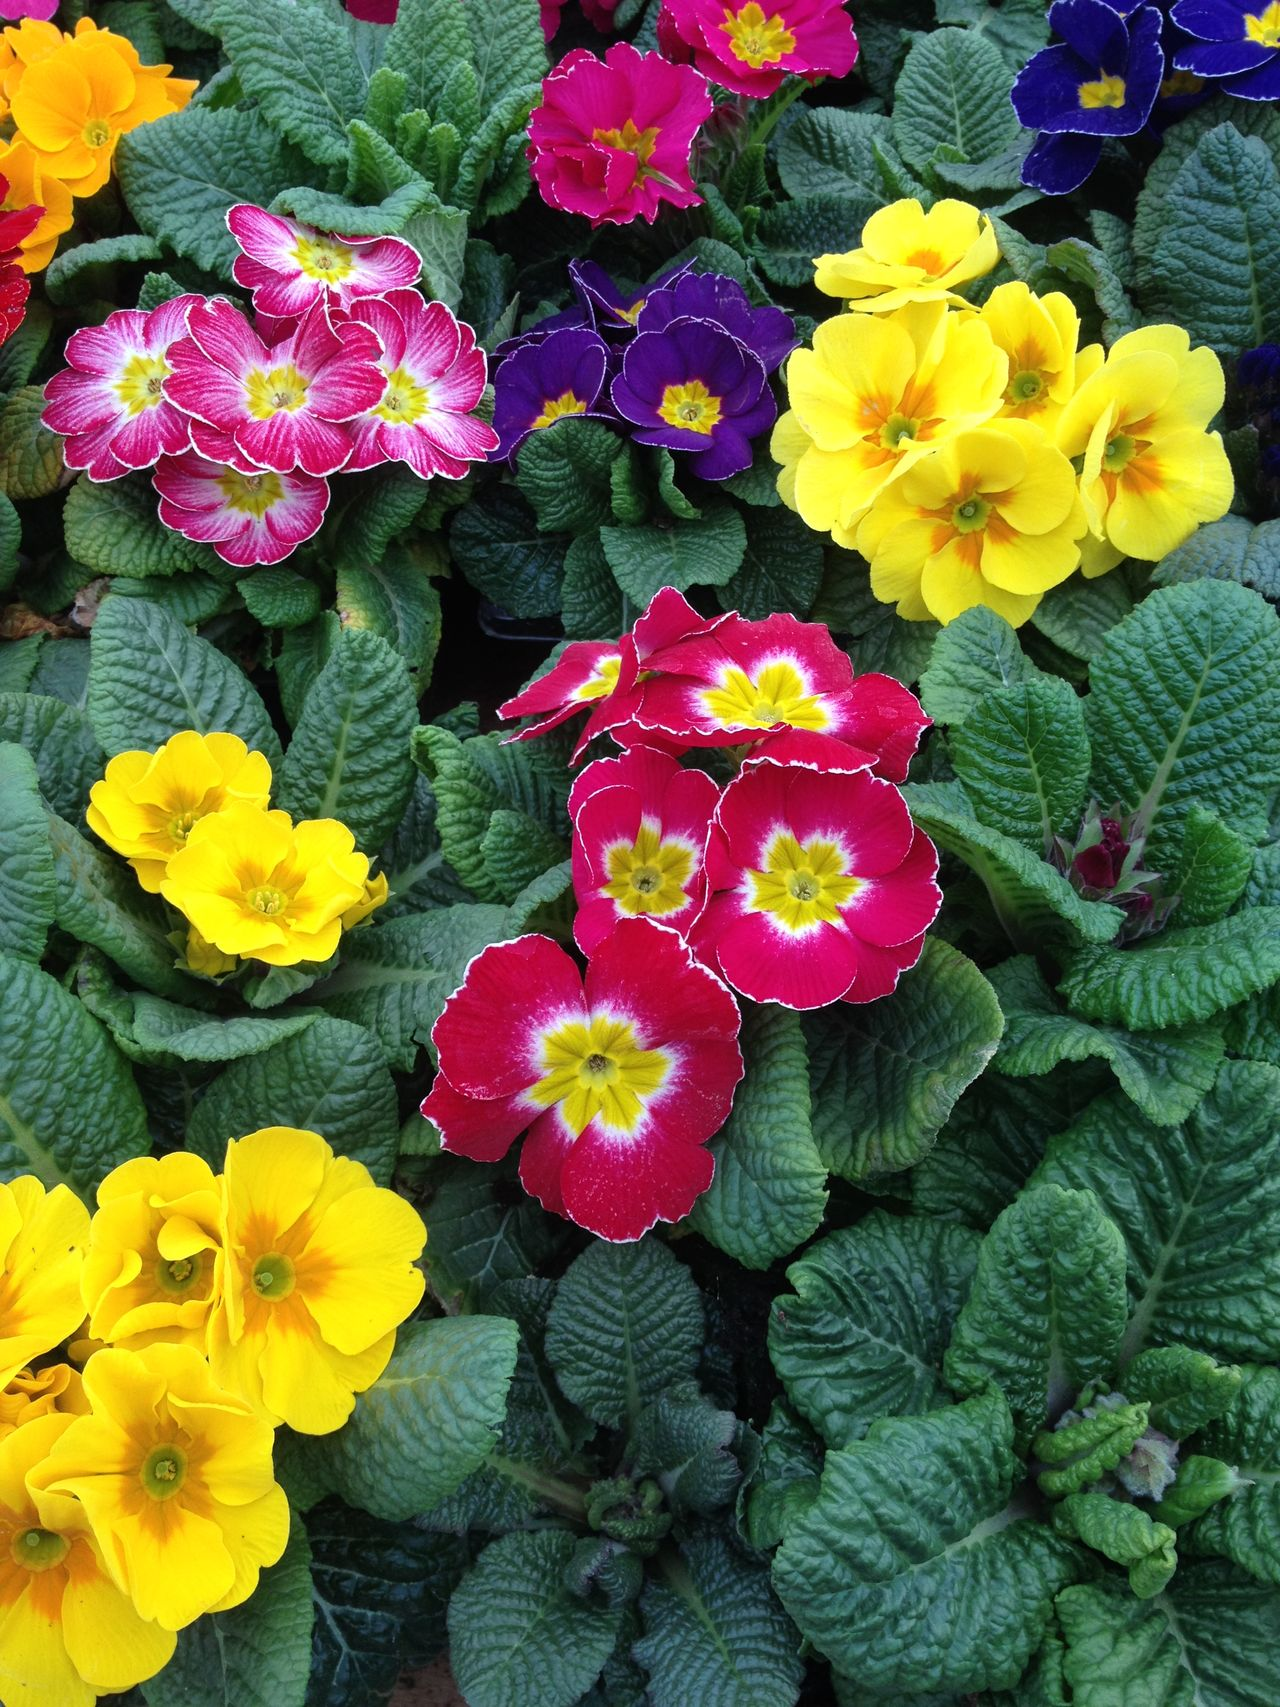 Primula flowers Beauty Beauty In Nature Bloom Blooming Botany Colourful Flora Flower Fragility Freshness Garden Nature Outdoors Petal Pink Plant Primrose Primula Purple Spring Springtime Summer Yellow